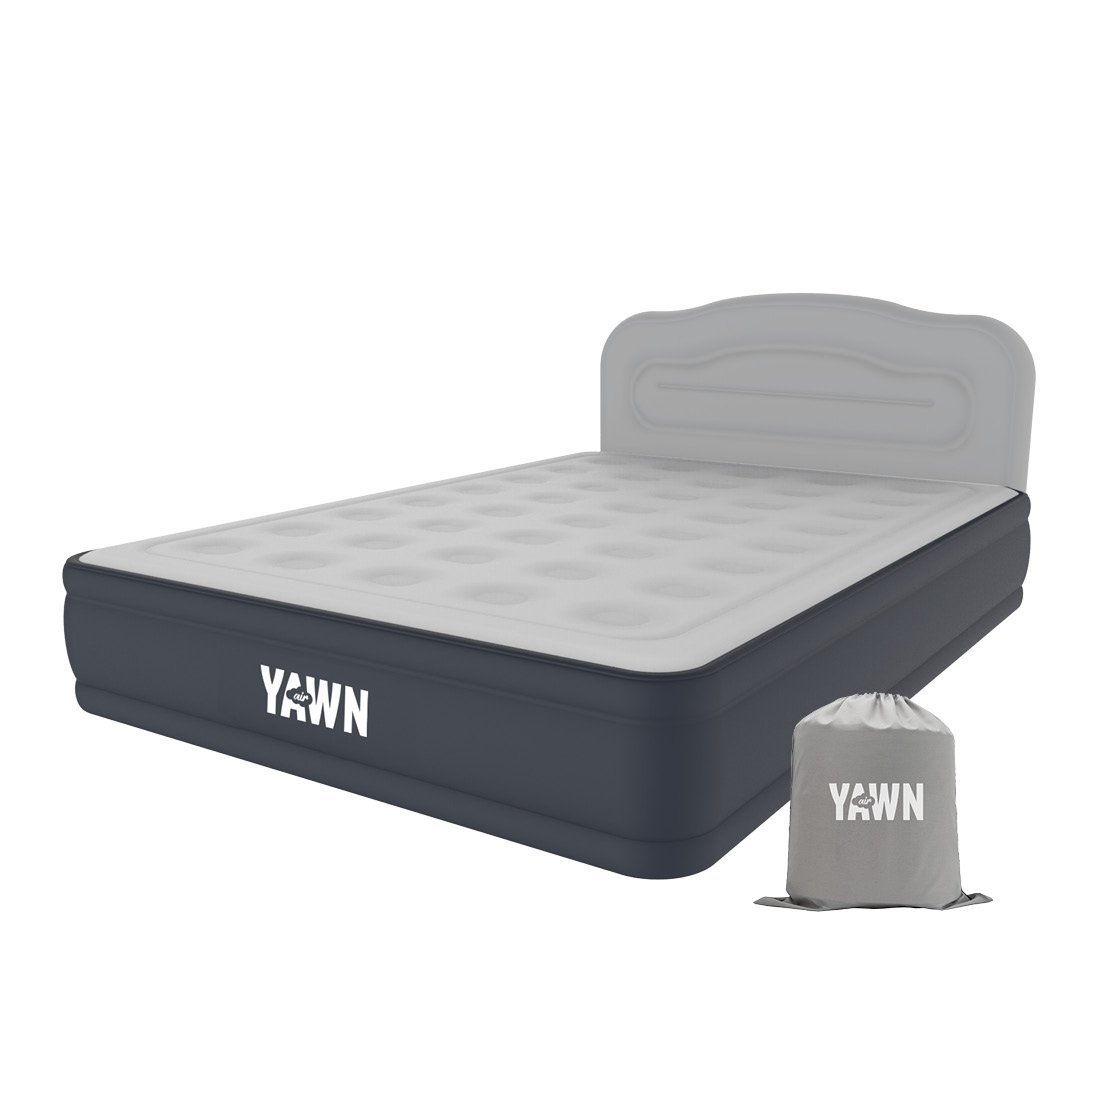 High Street TV Yawn Air Bed Size Self Inflating Airbed With Built In Pump